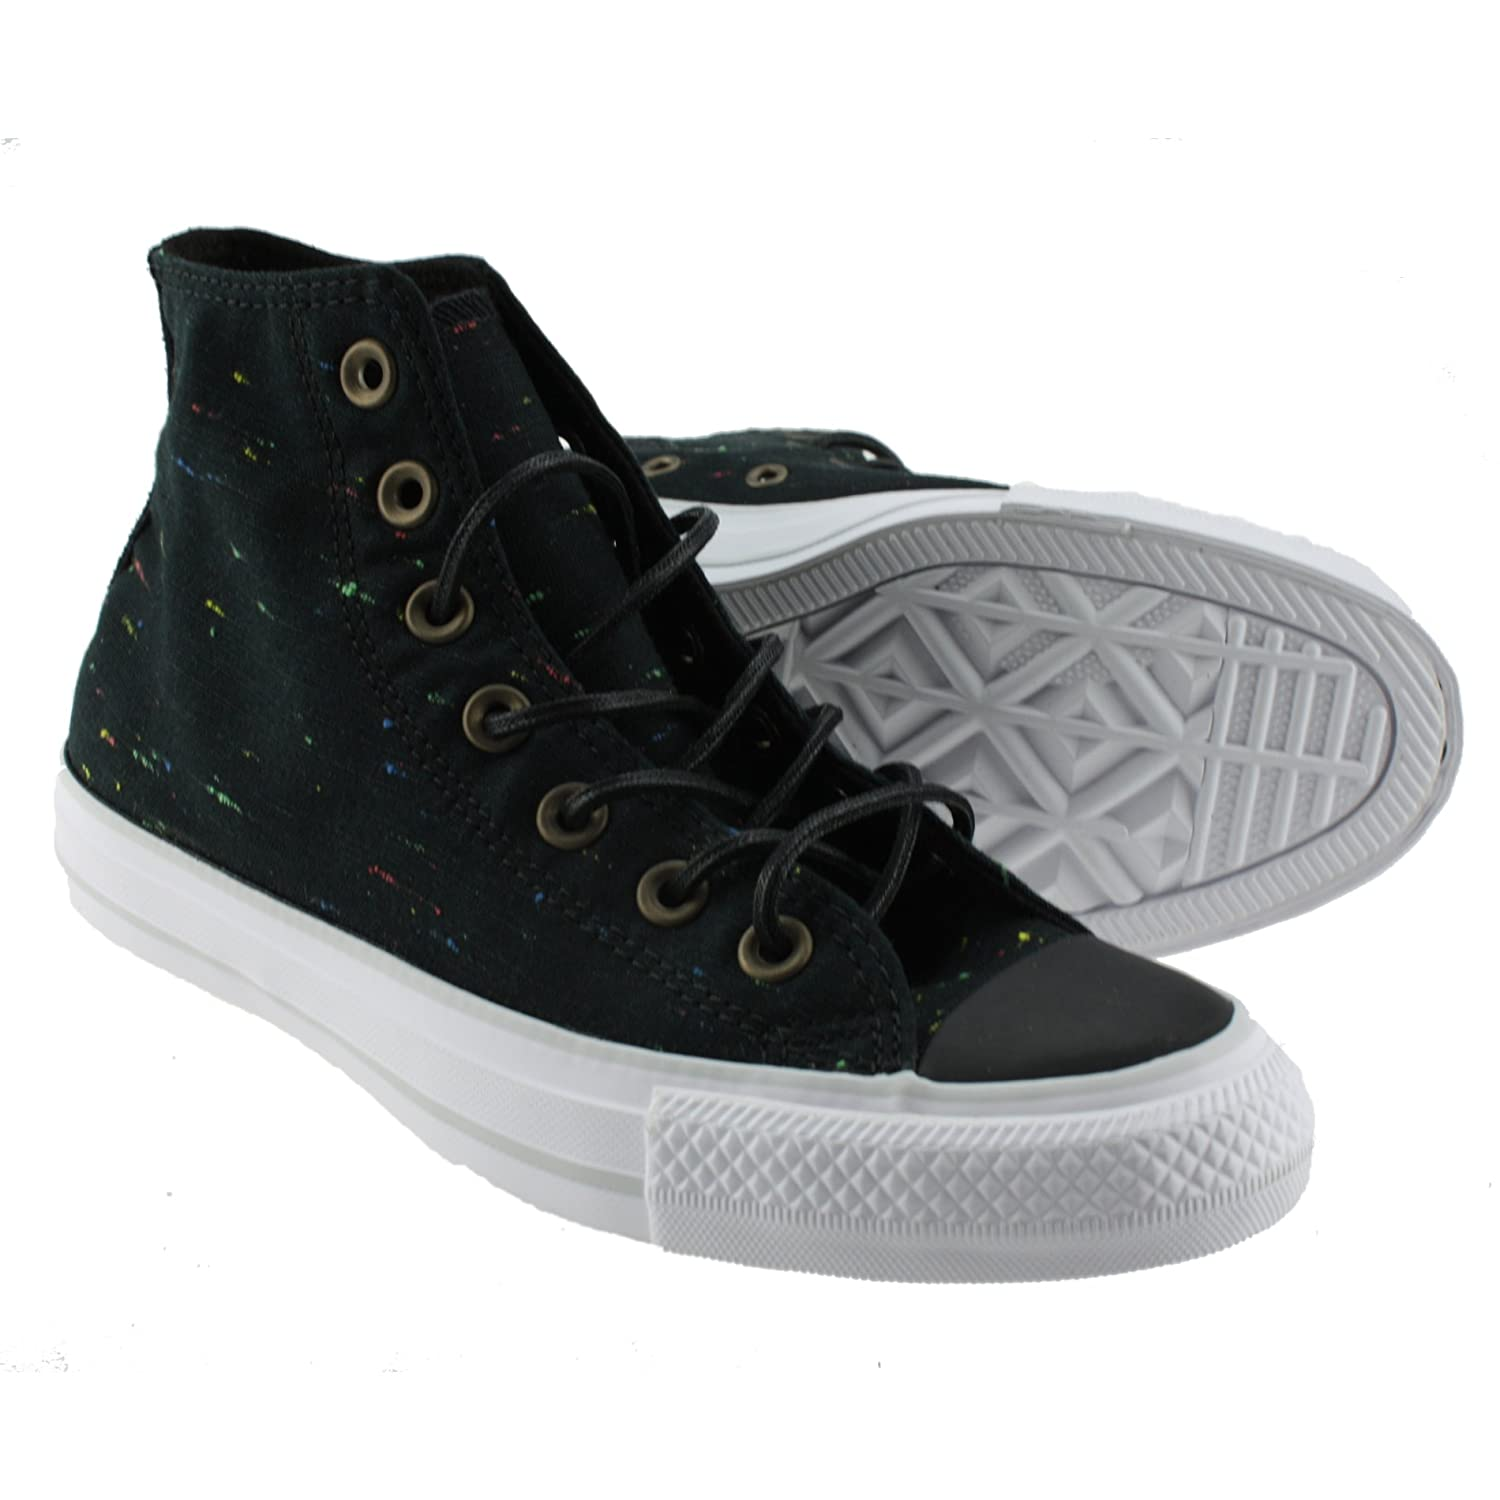 Converse Unisex Chuck Taylor All-Star High-Top Casual Sneakers in Classic Style and Color and Durable Canvas Uppers B01EHZHKNS 9.5 D(M) US|Black White